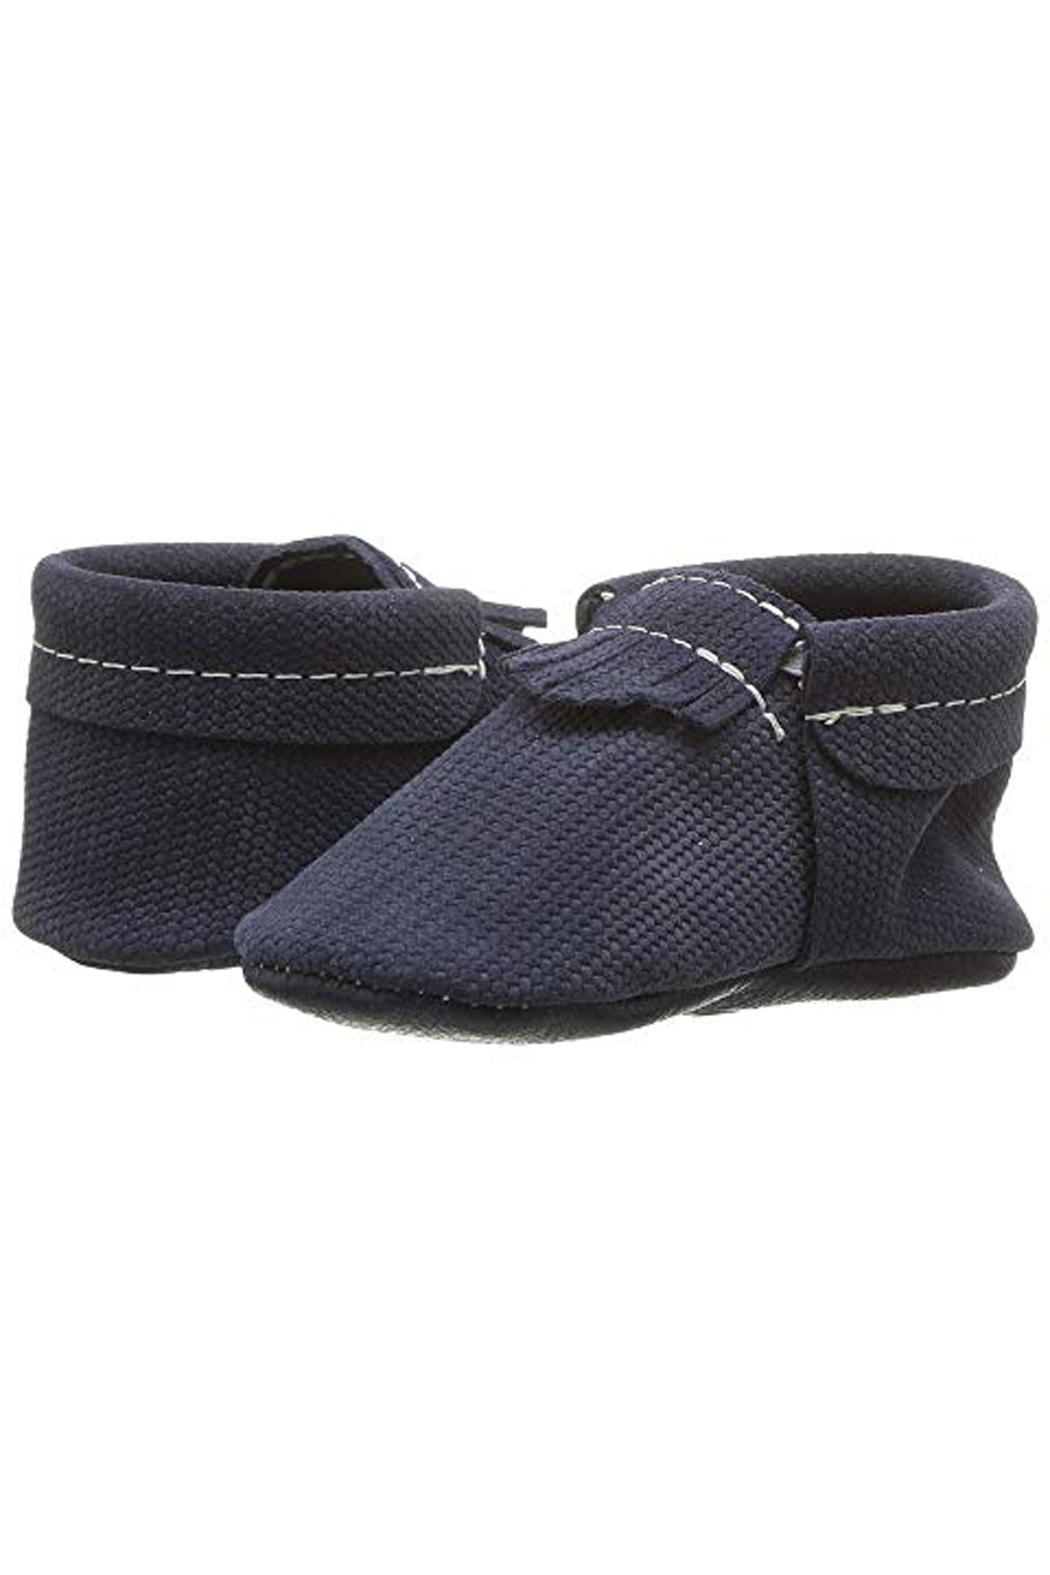 Freshly Picked Knit-Knavy City Moccasin - Main Image